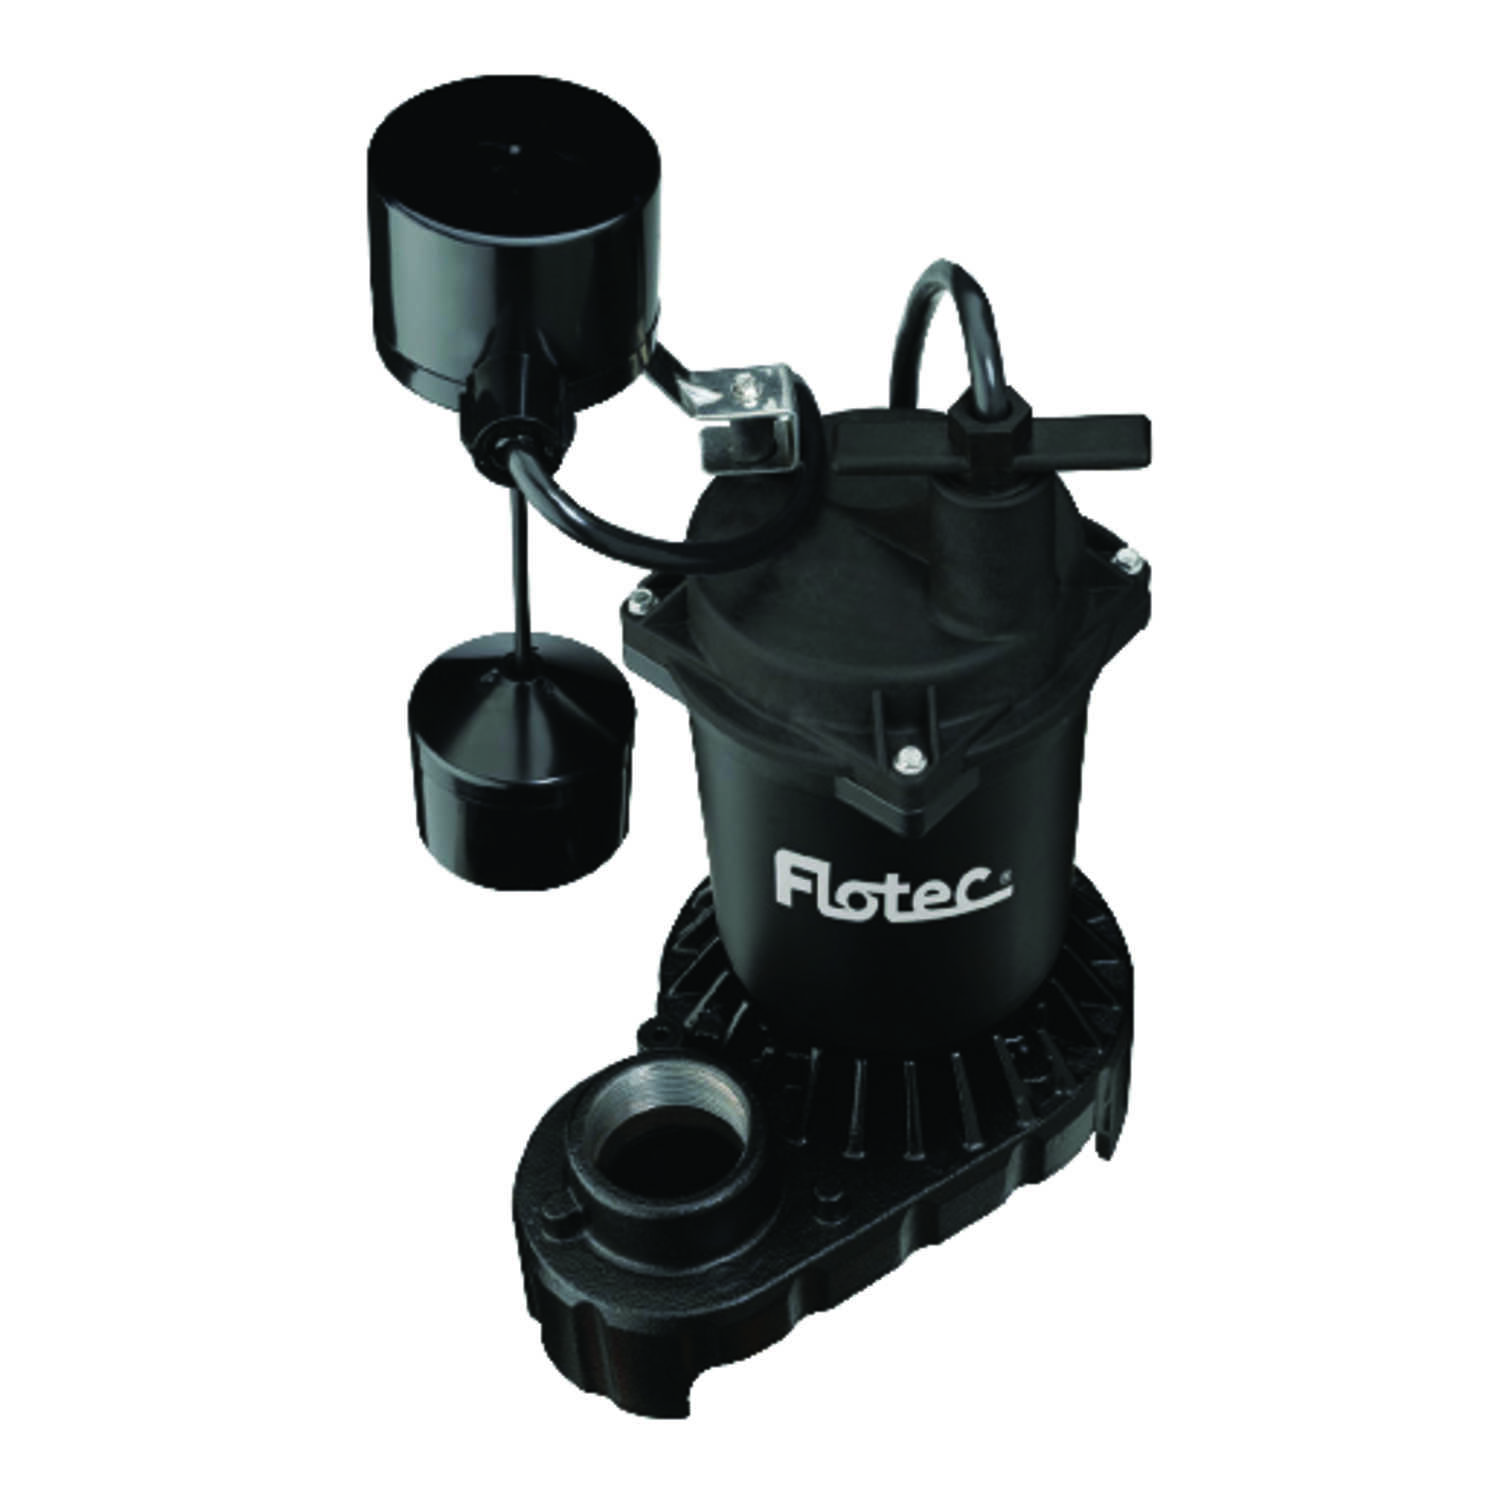 Pentair  Flotec  1/2 hp 4700 gph Zinc  Submersible Sump Pump